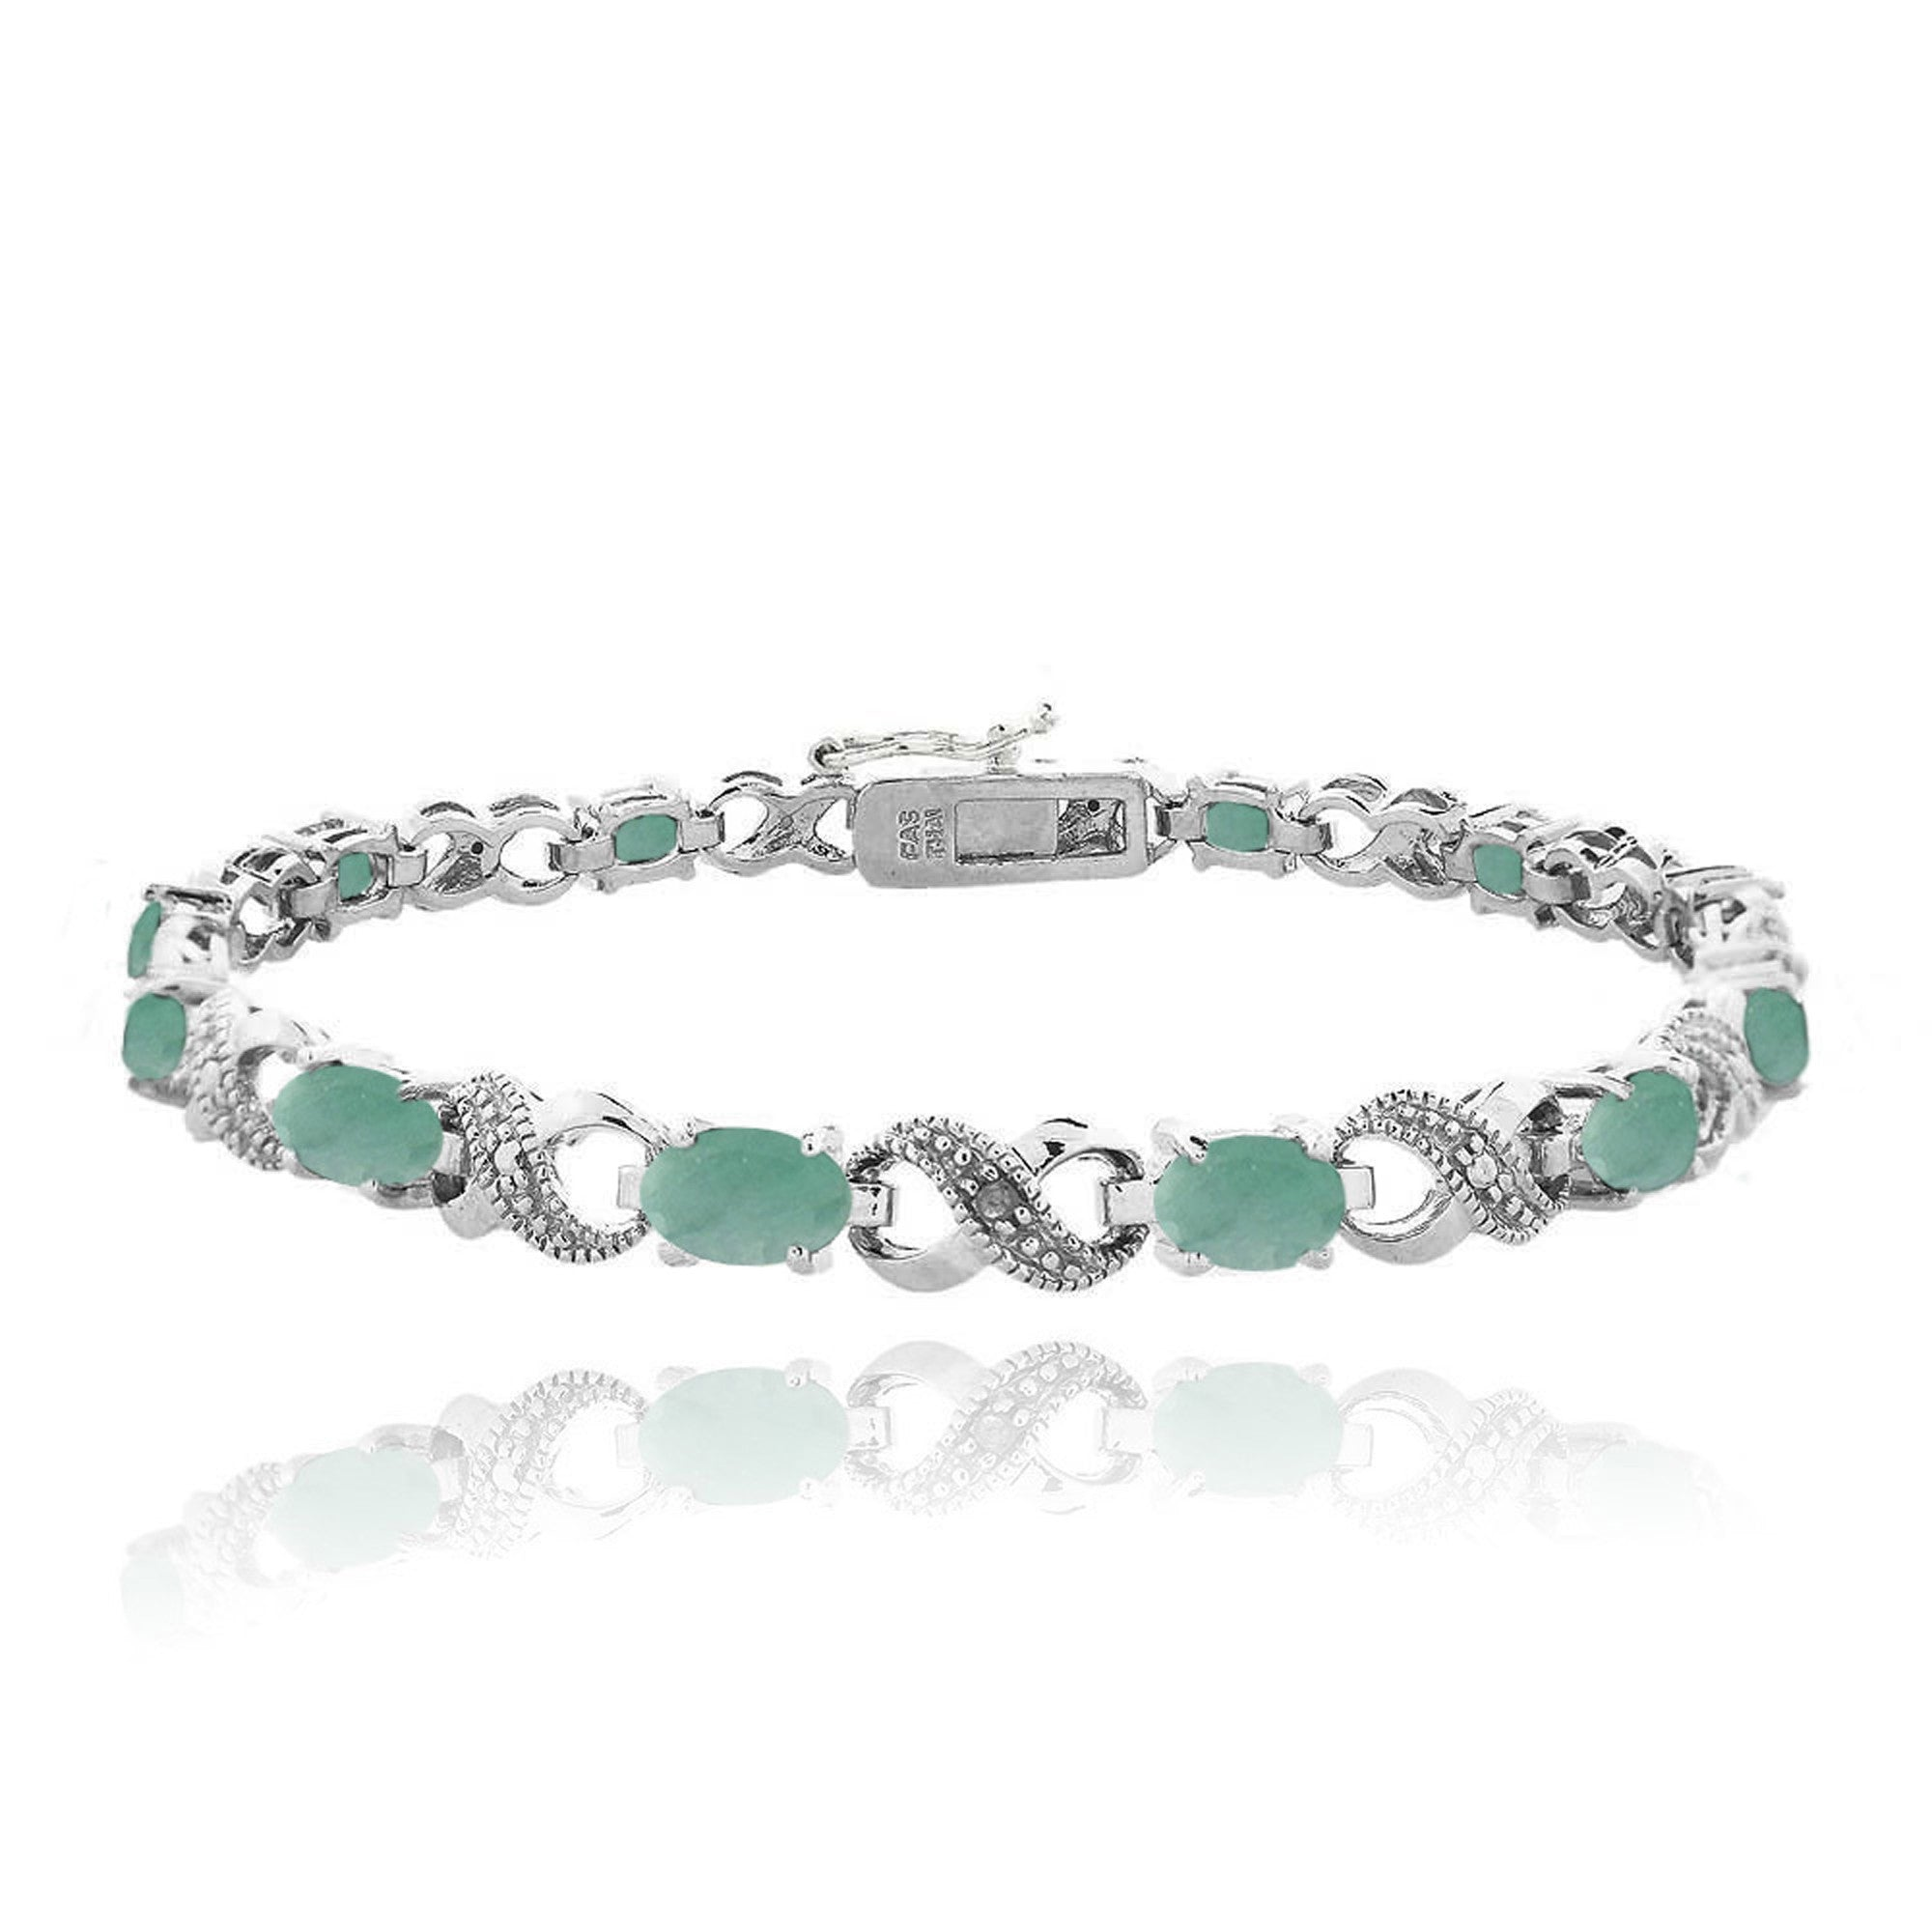 Infinity Link Bracelet With Diamond & Gem Accents - Emerald